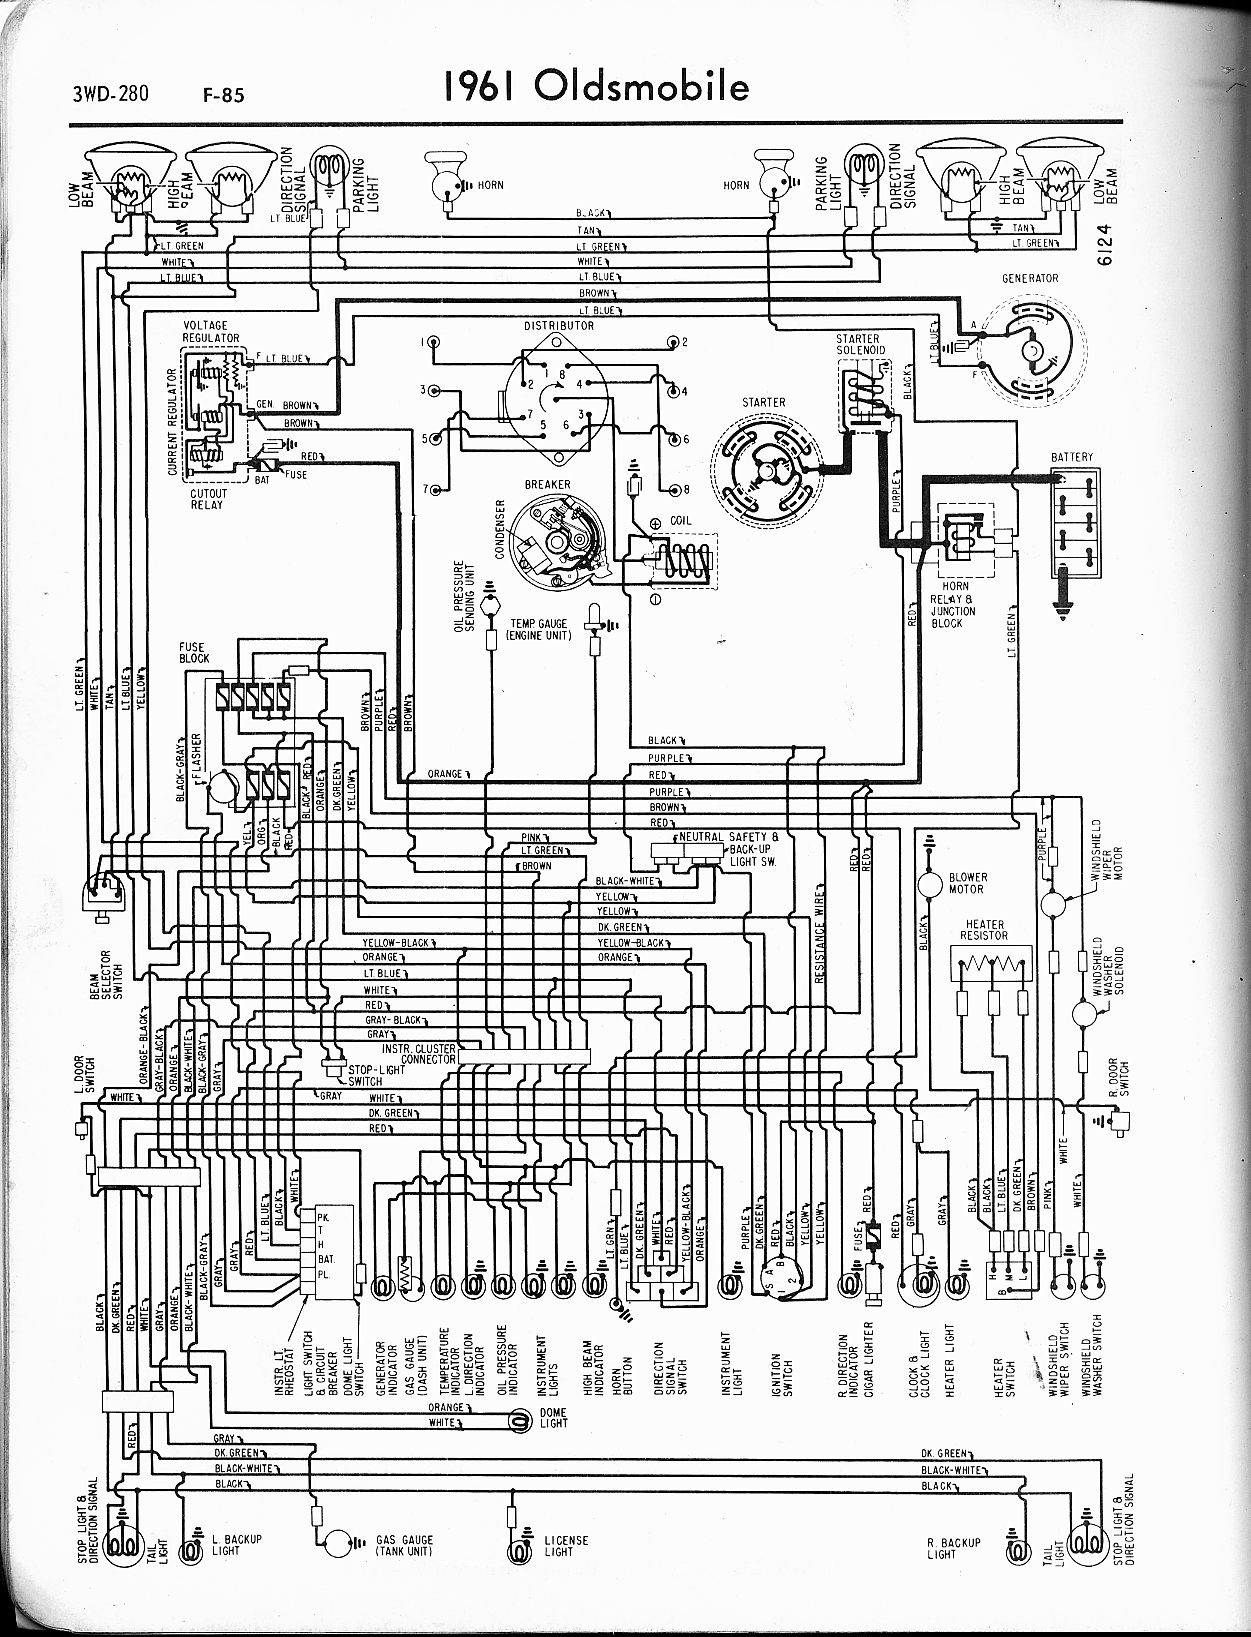 MWire5765 280 oldsmobile wiring diagrams the old car manual project 1957 oldsmobile wiring diagram at beritabola.co